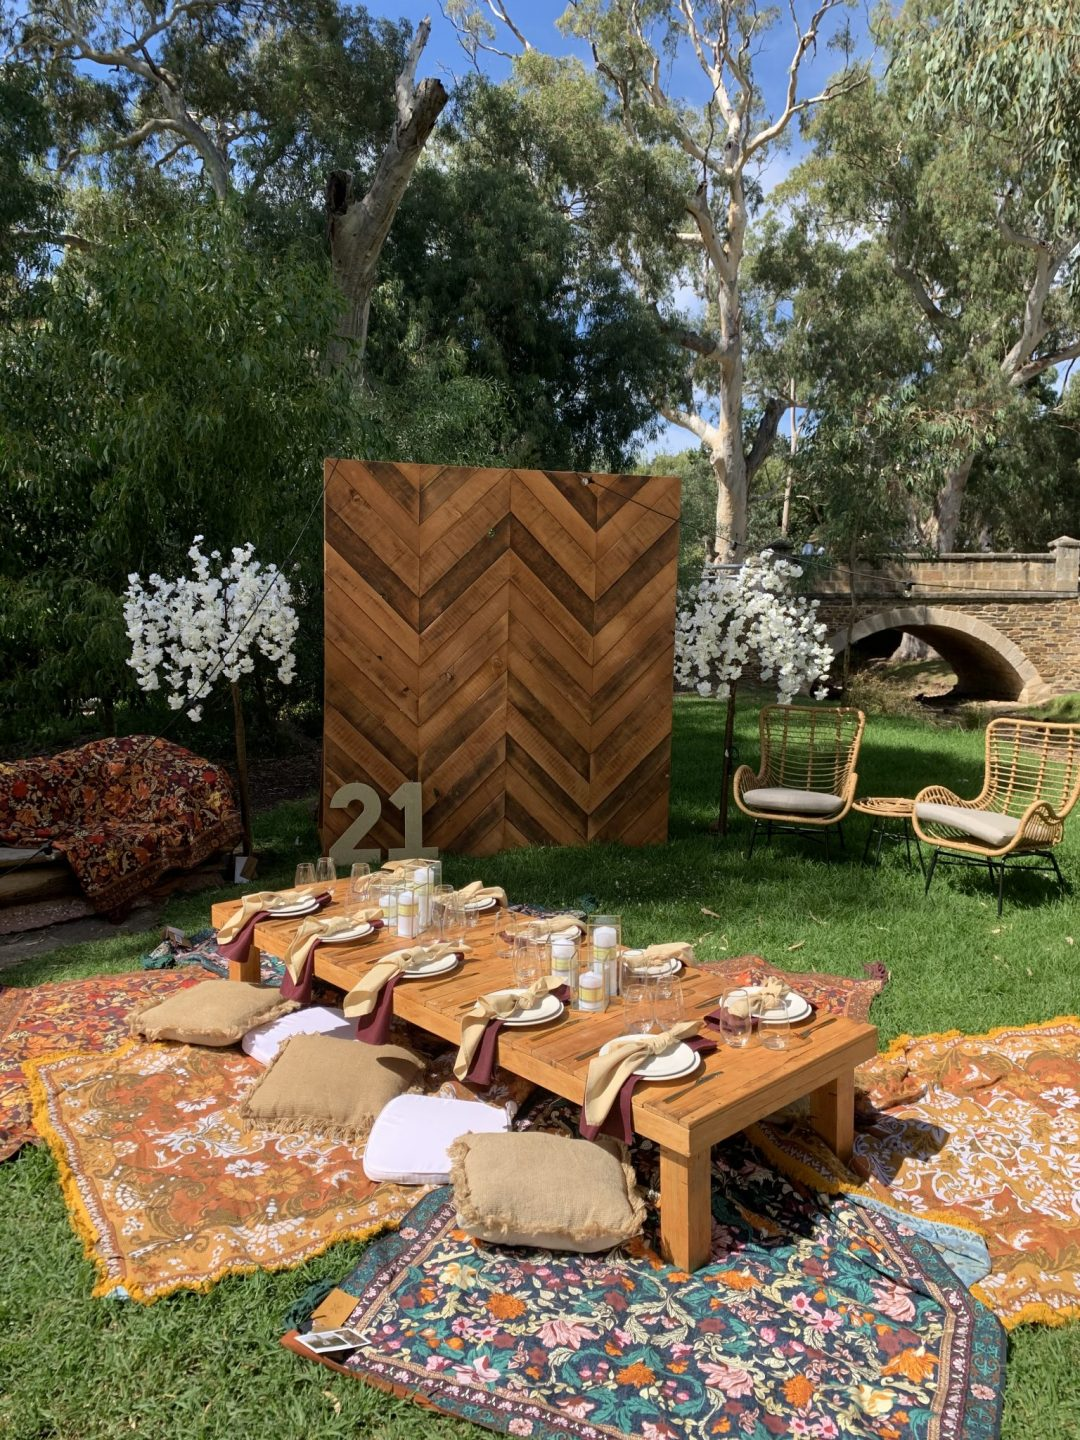 picnic-package-with-rustic-pallet-picnic-table-glass-candle-boxes-with-champagne-and-burgundy-linen-napkins-AFC-crockery-and-standard-glassware-assorted-cushions-and-wandering-folk-rugs